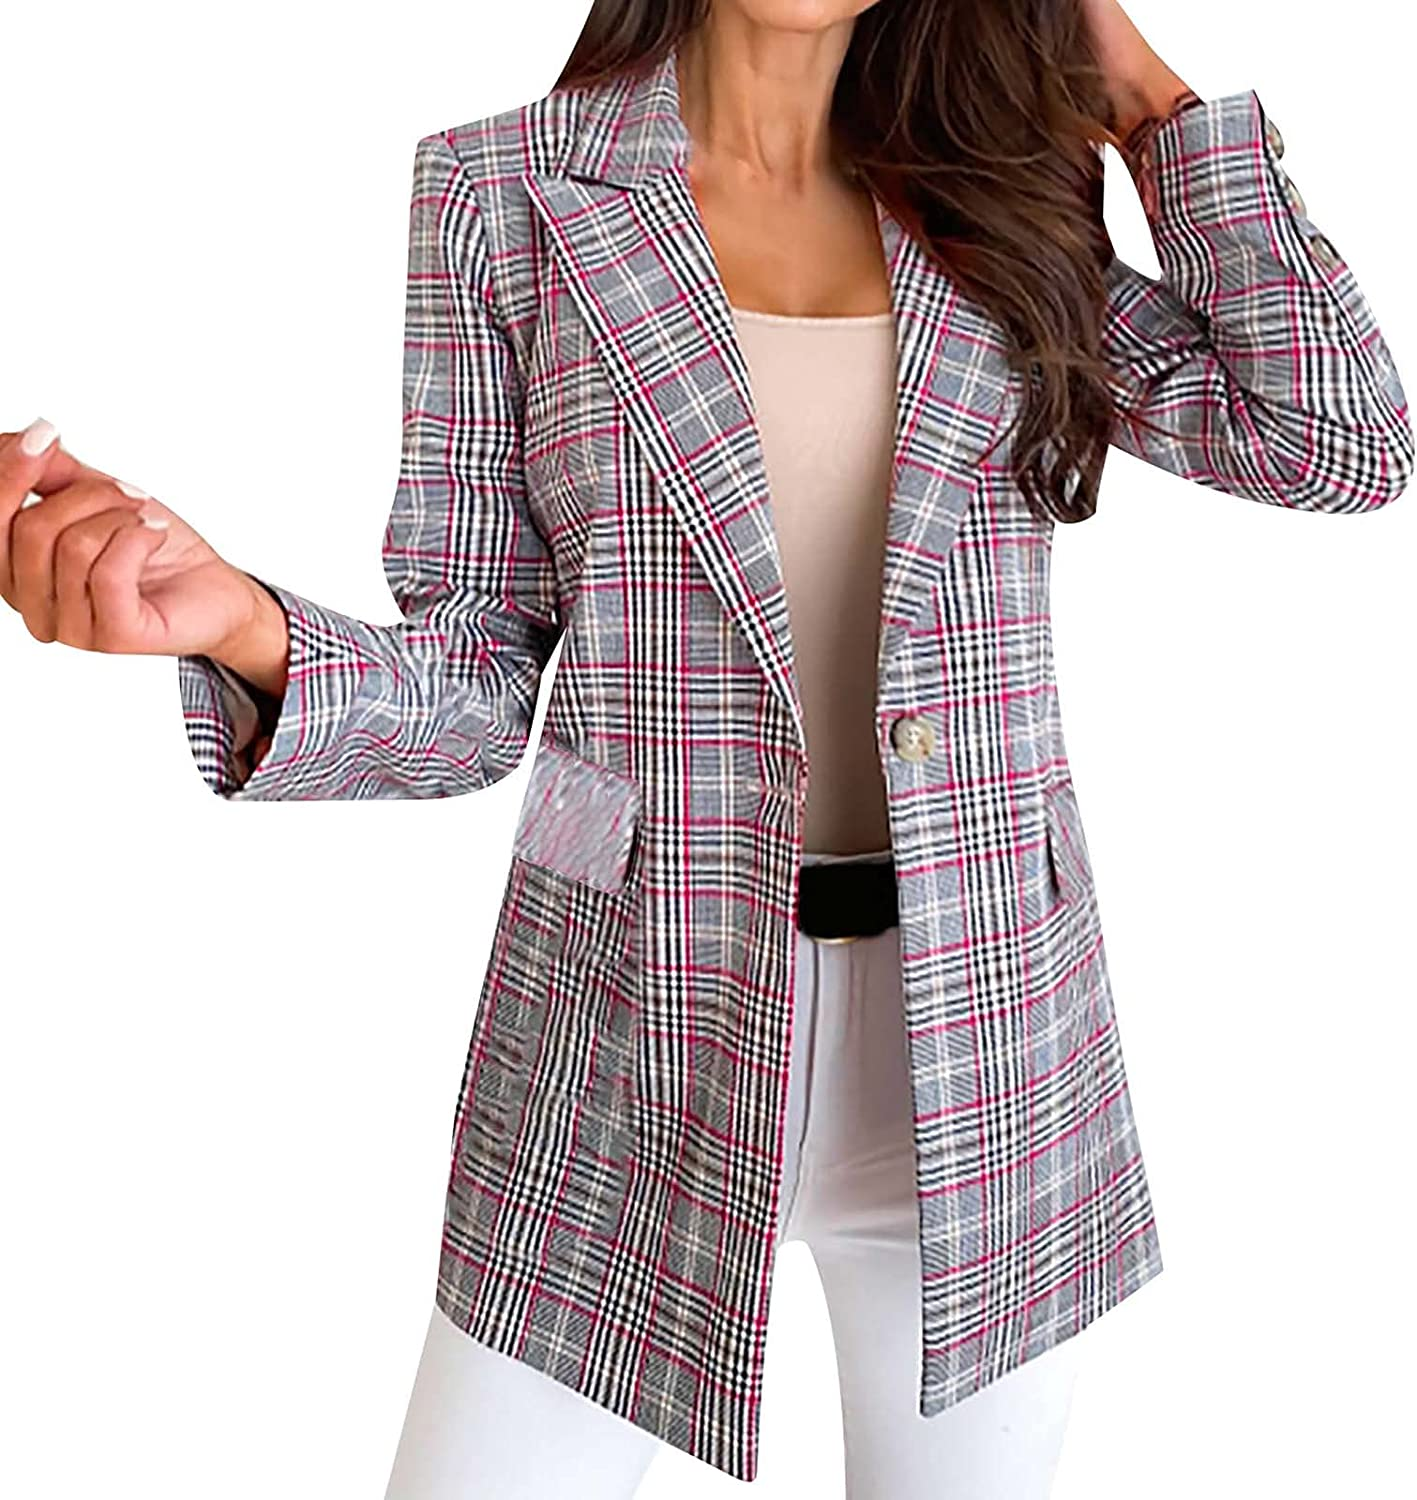 Womens Plaid Single Breasted Blazer Business Casual Plus Size Fitted Suit Jackets Long Sleeve Fall Stylish Lapel Coat